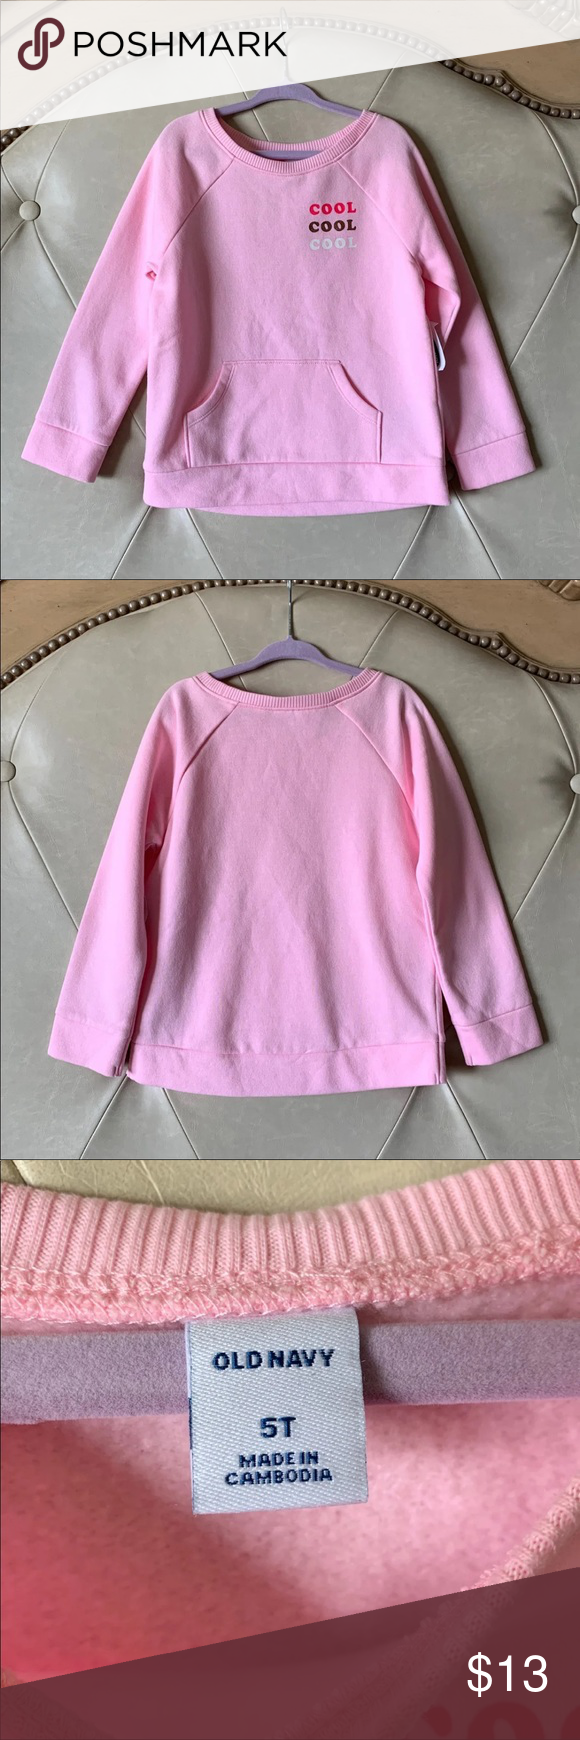 14f07885a9e41 NWT Old Navy Sweatshirt New with tag old navy sweatshirt Size 5t Soft  inside Old Navy